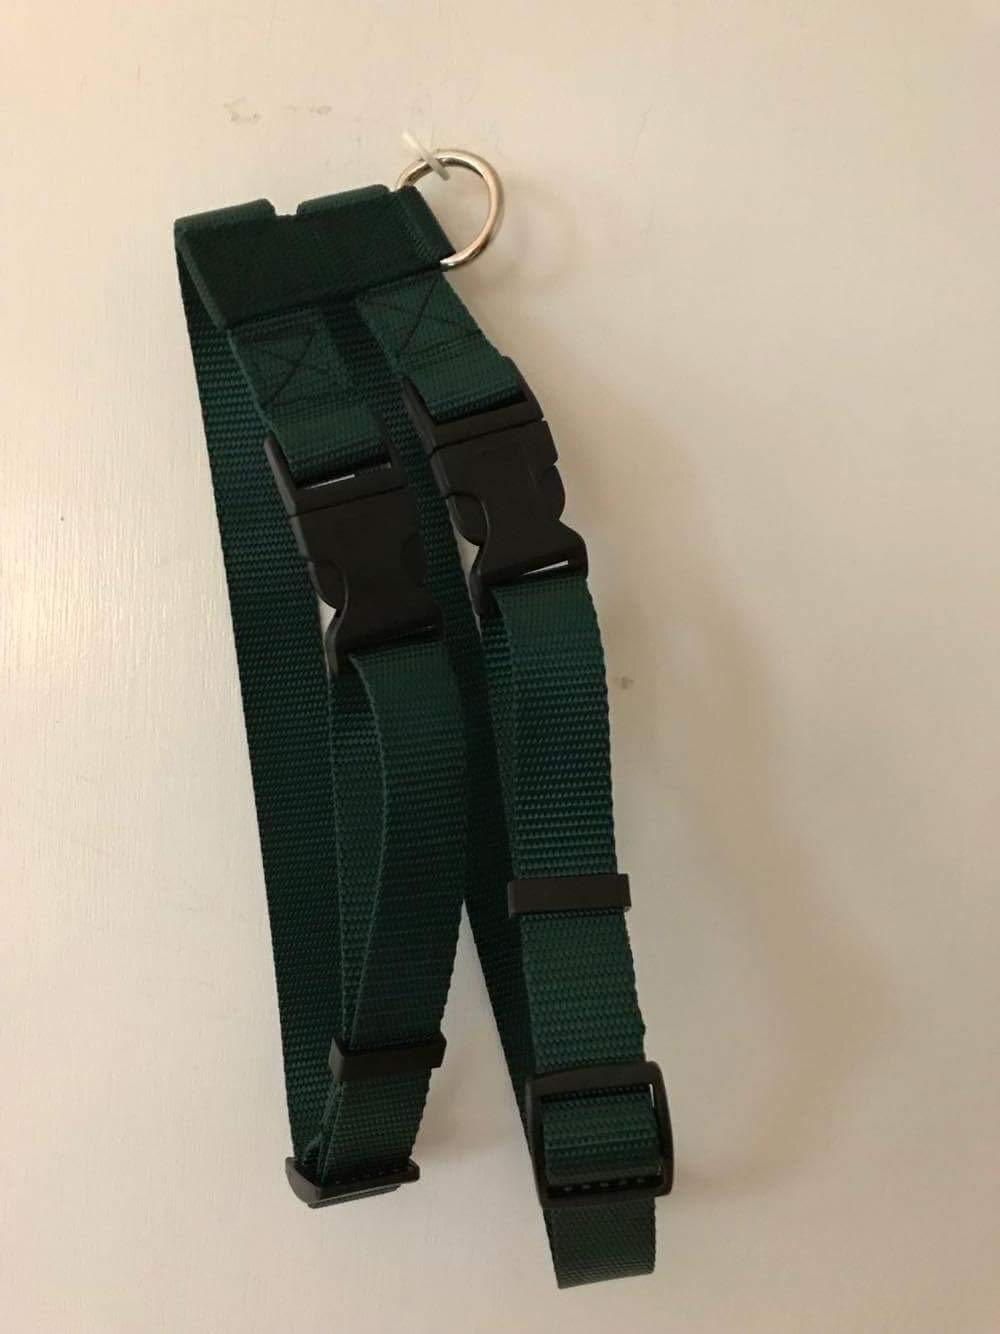 PIG HOG Harness 2 Curved Buckles Lighter Weight Home Made